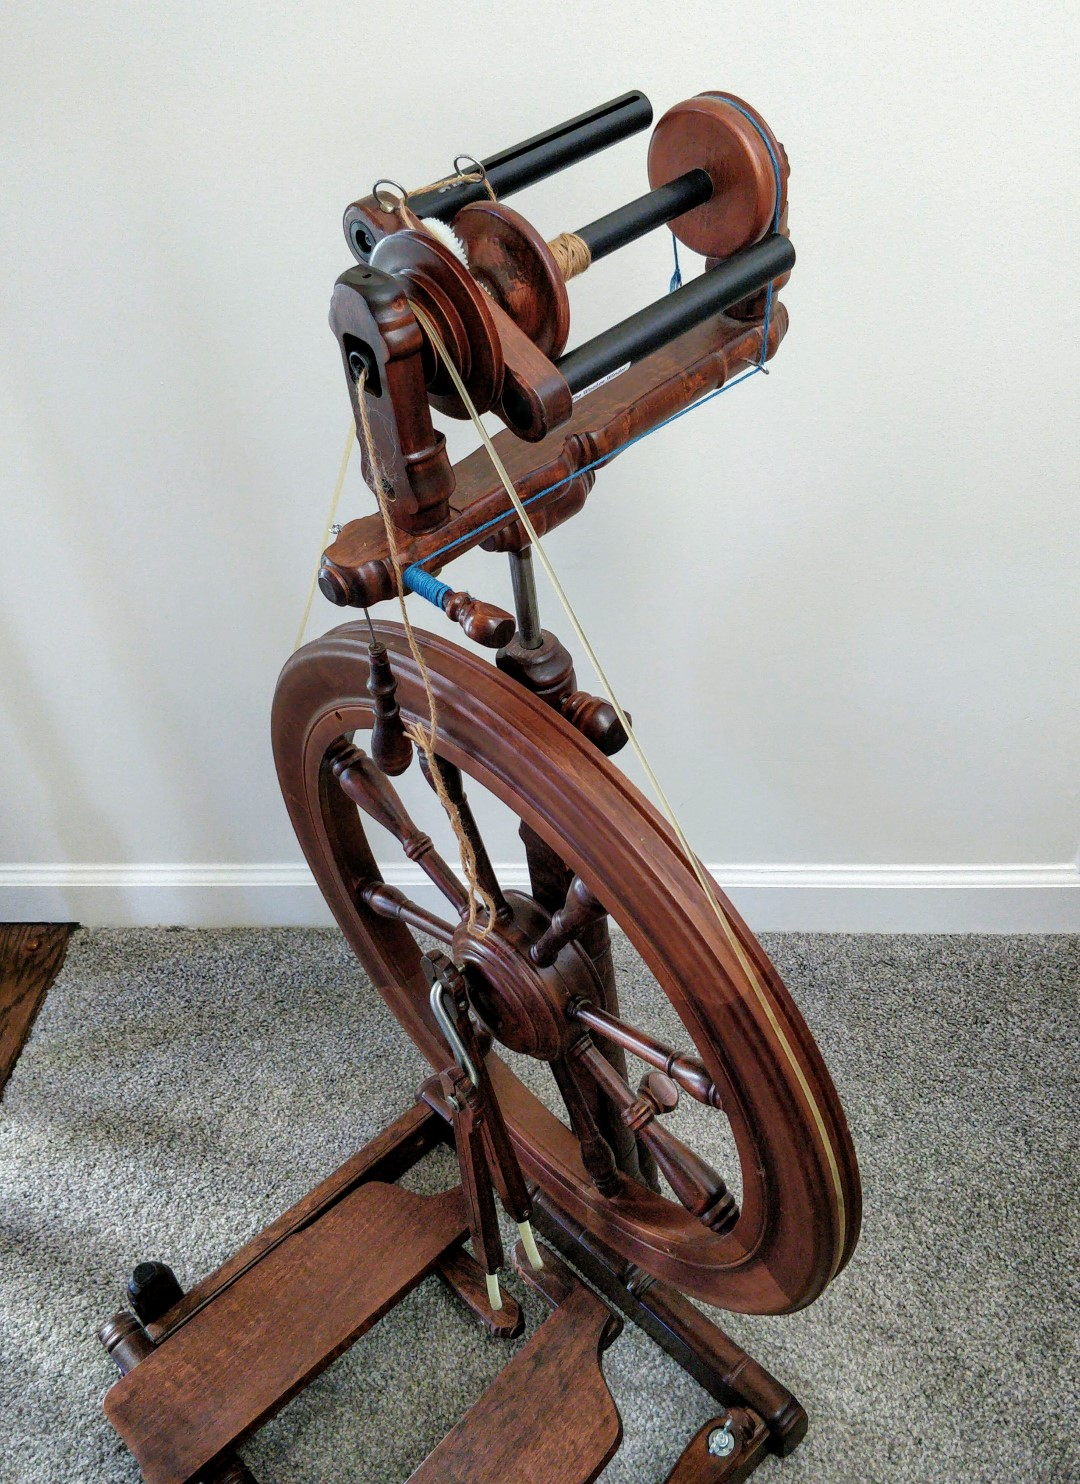 A Kromski Sonata spinning wheel in walnut finish, in 3/4 view from above, with a Woolee Winder flyer and bobbin visible.